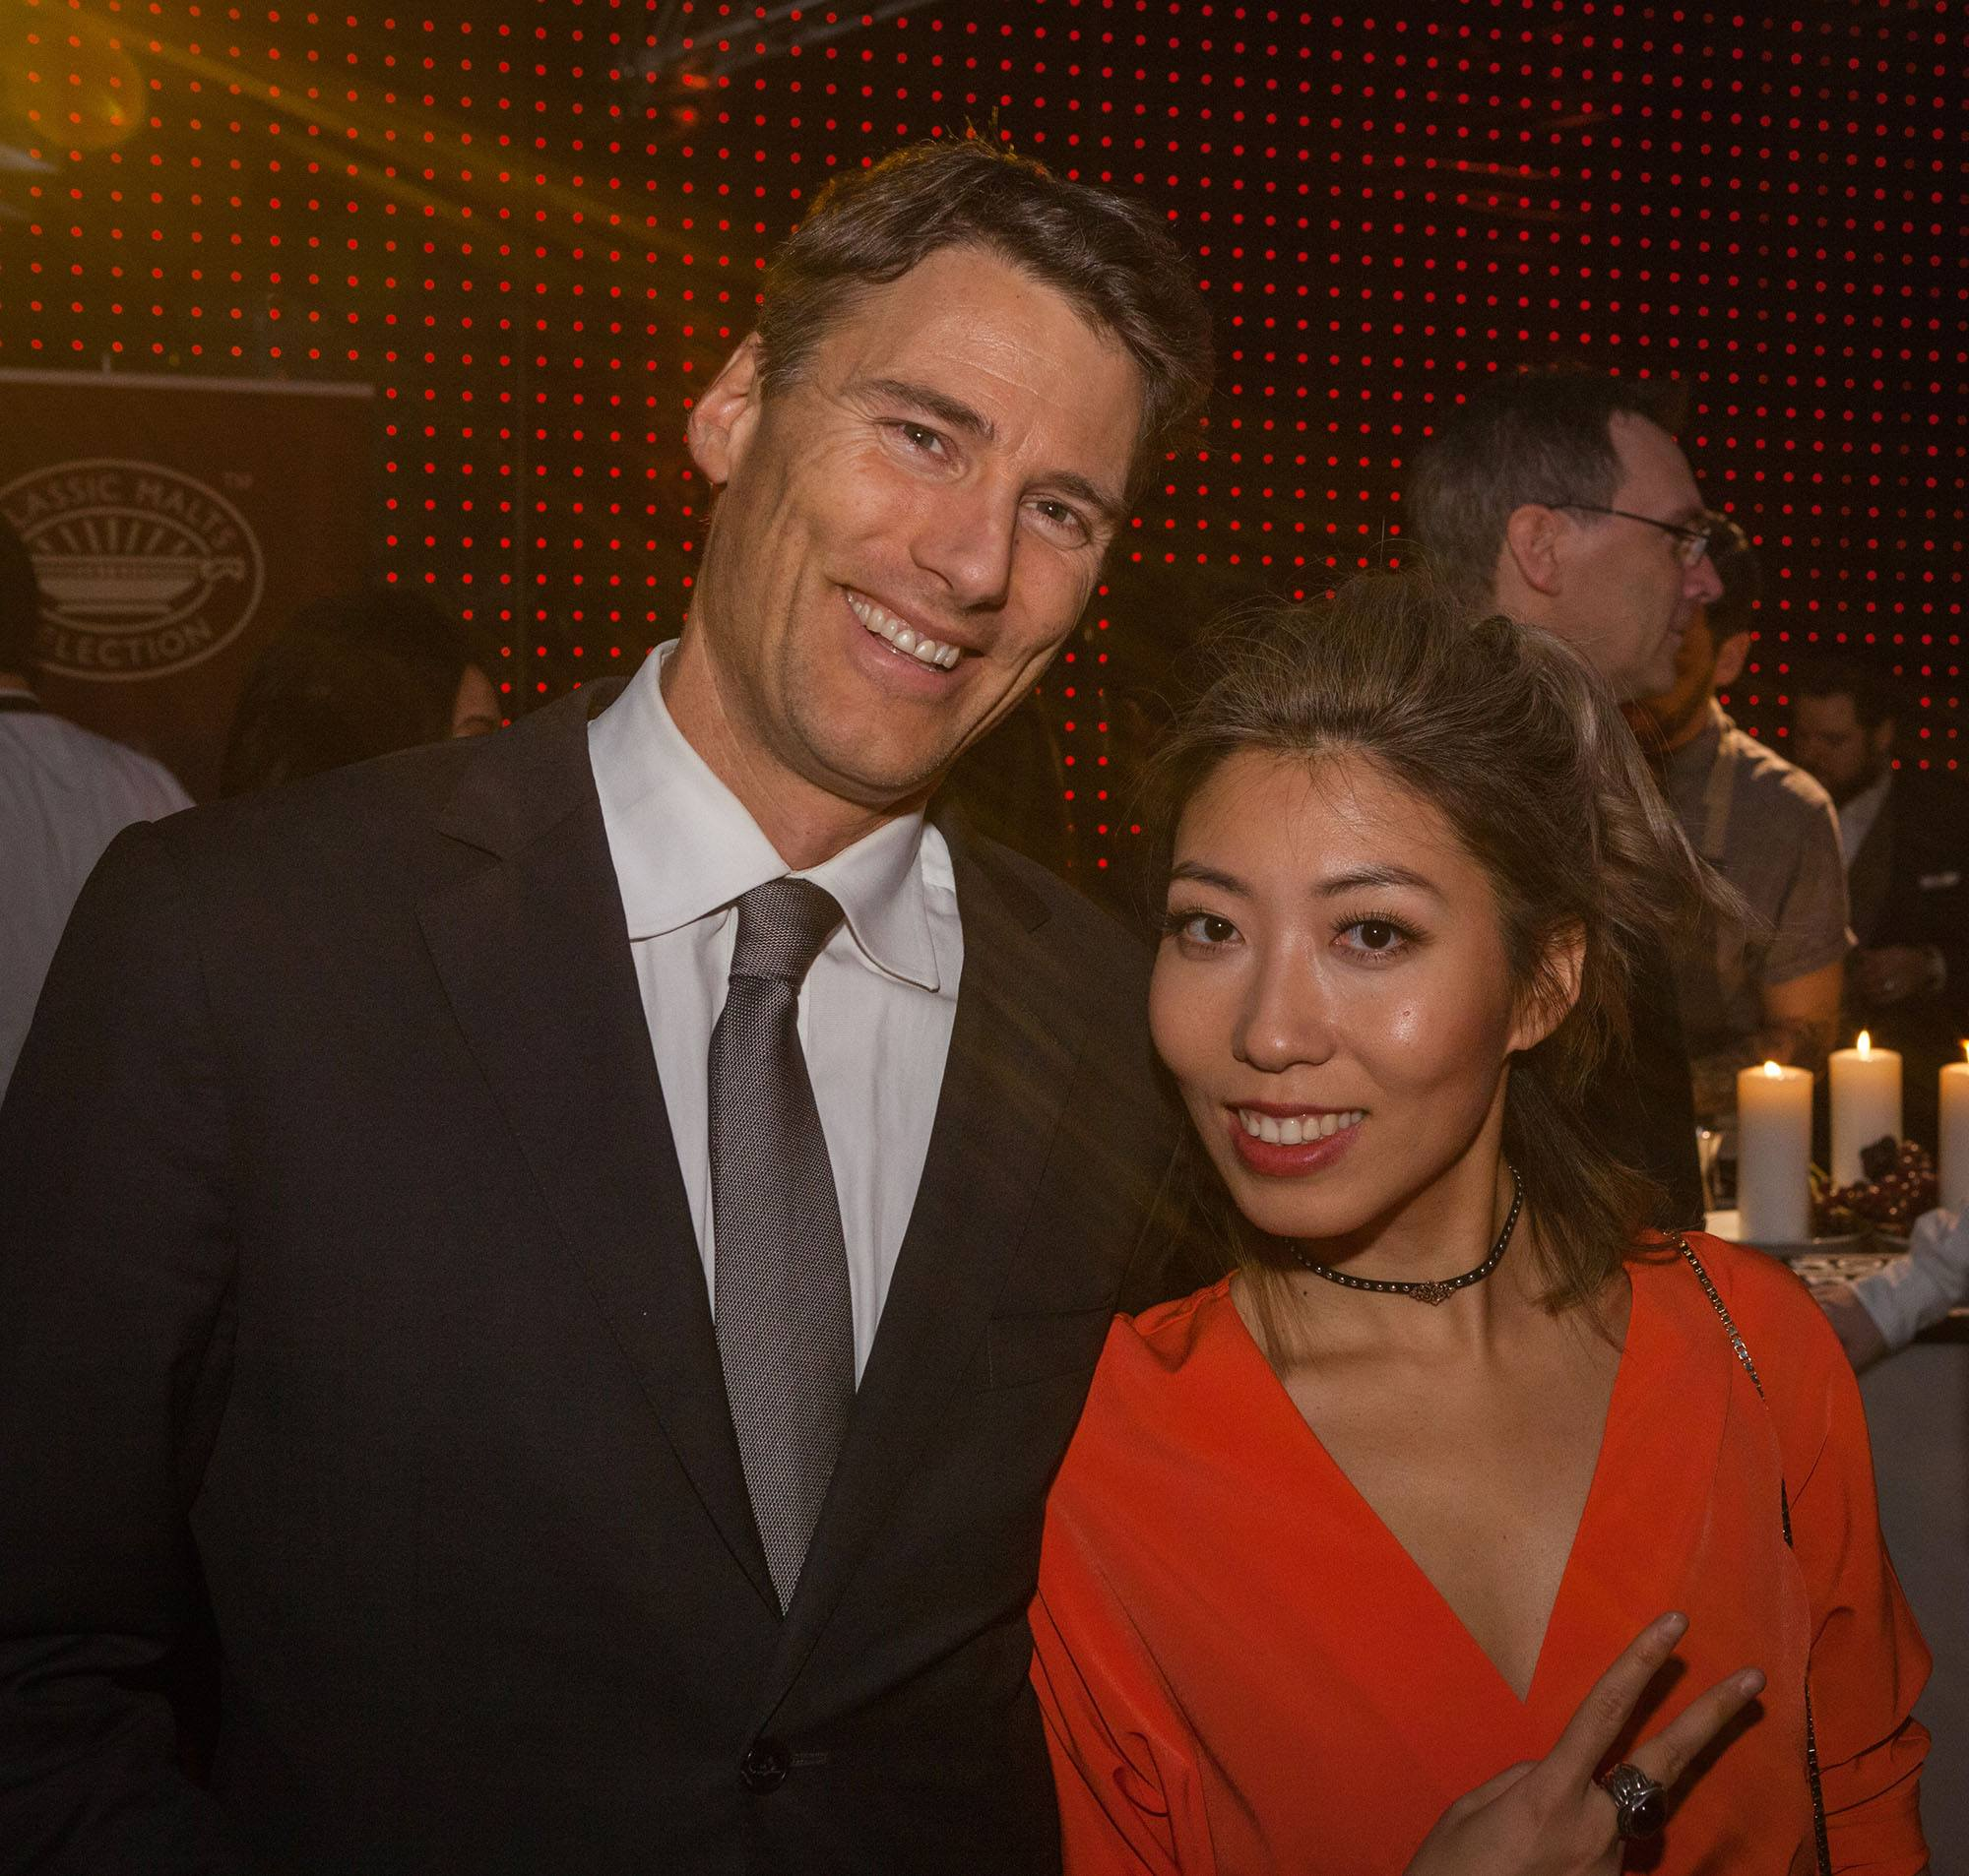 Vancouver mayor gregor robertson and girlfriend wanting qu at science of cocktails 2016 picture listen photography